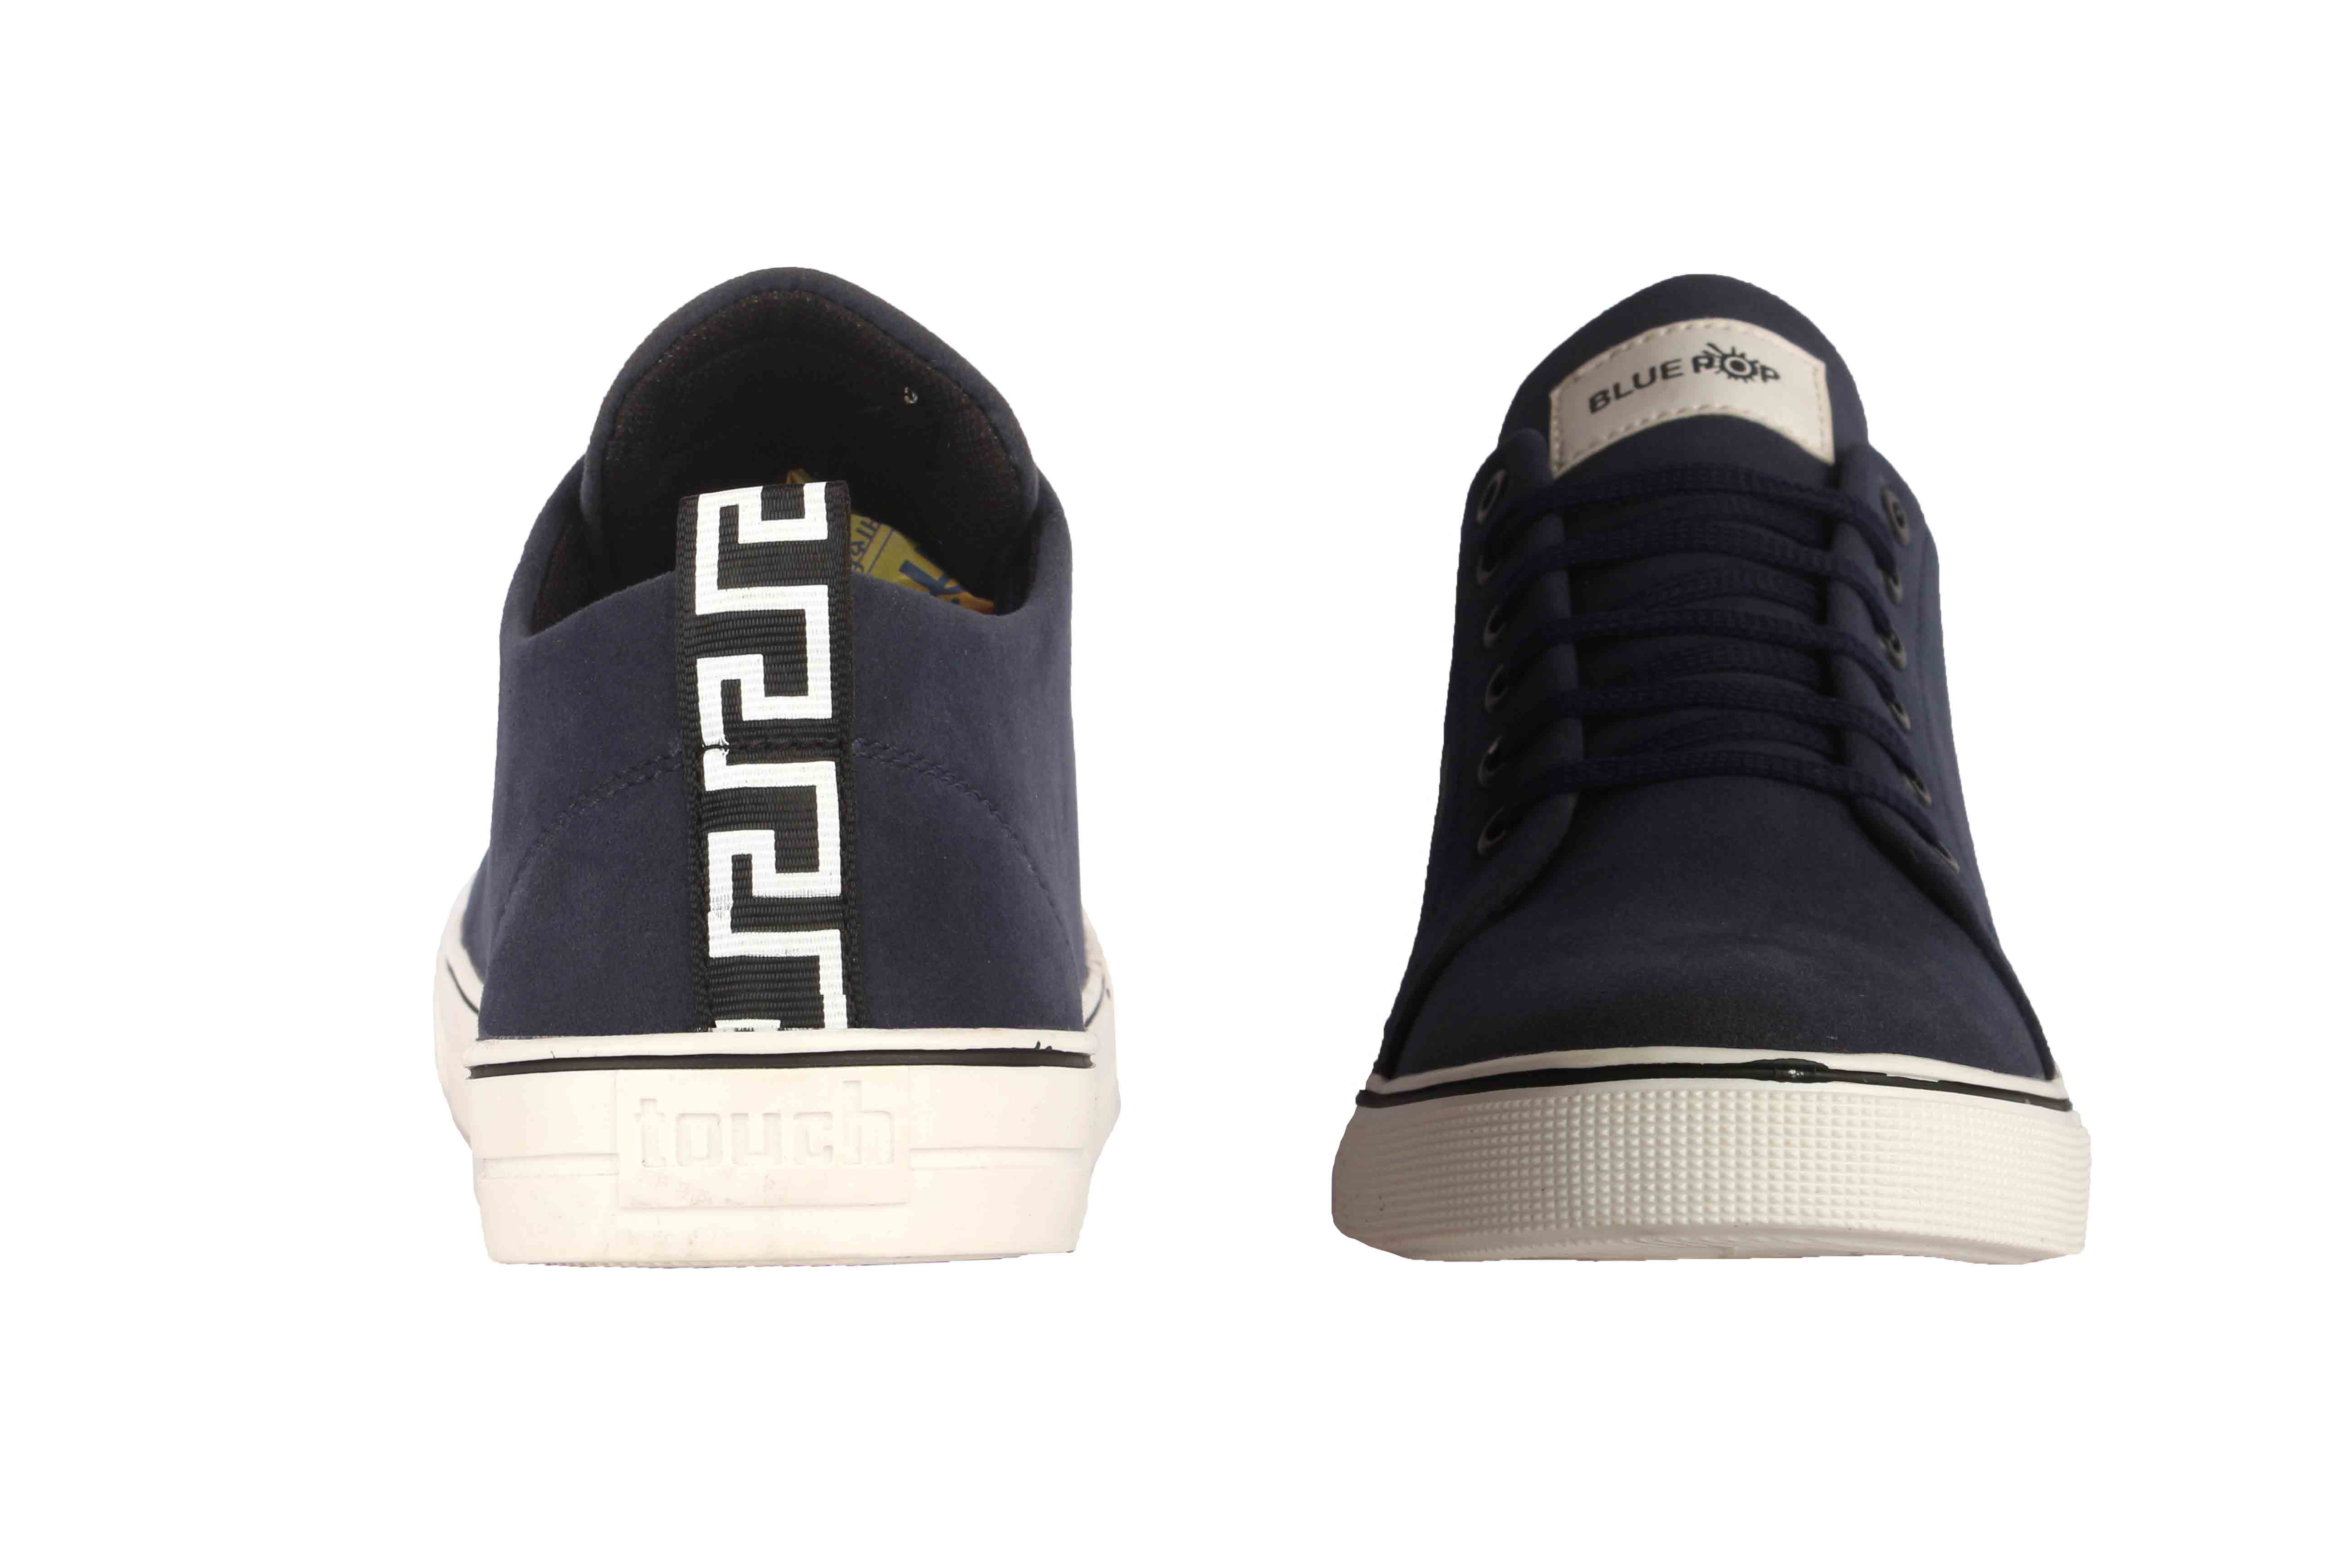 Blue Pop Trendy Casual Shoes For Men Bpm2468navy (navy,6-10,8 PAIR)